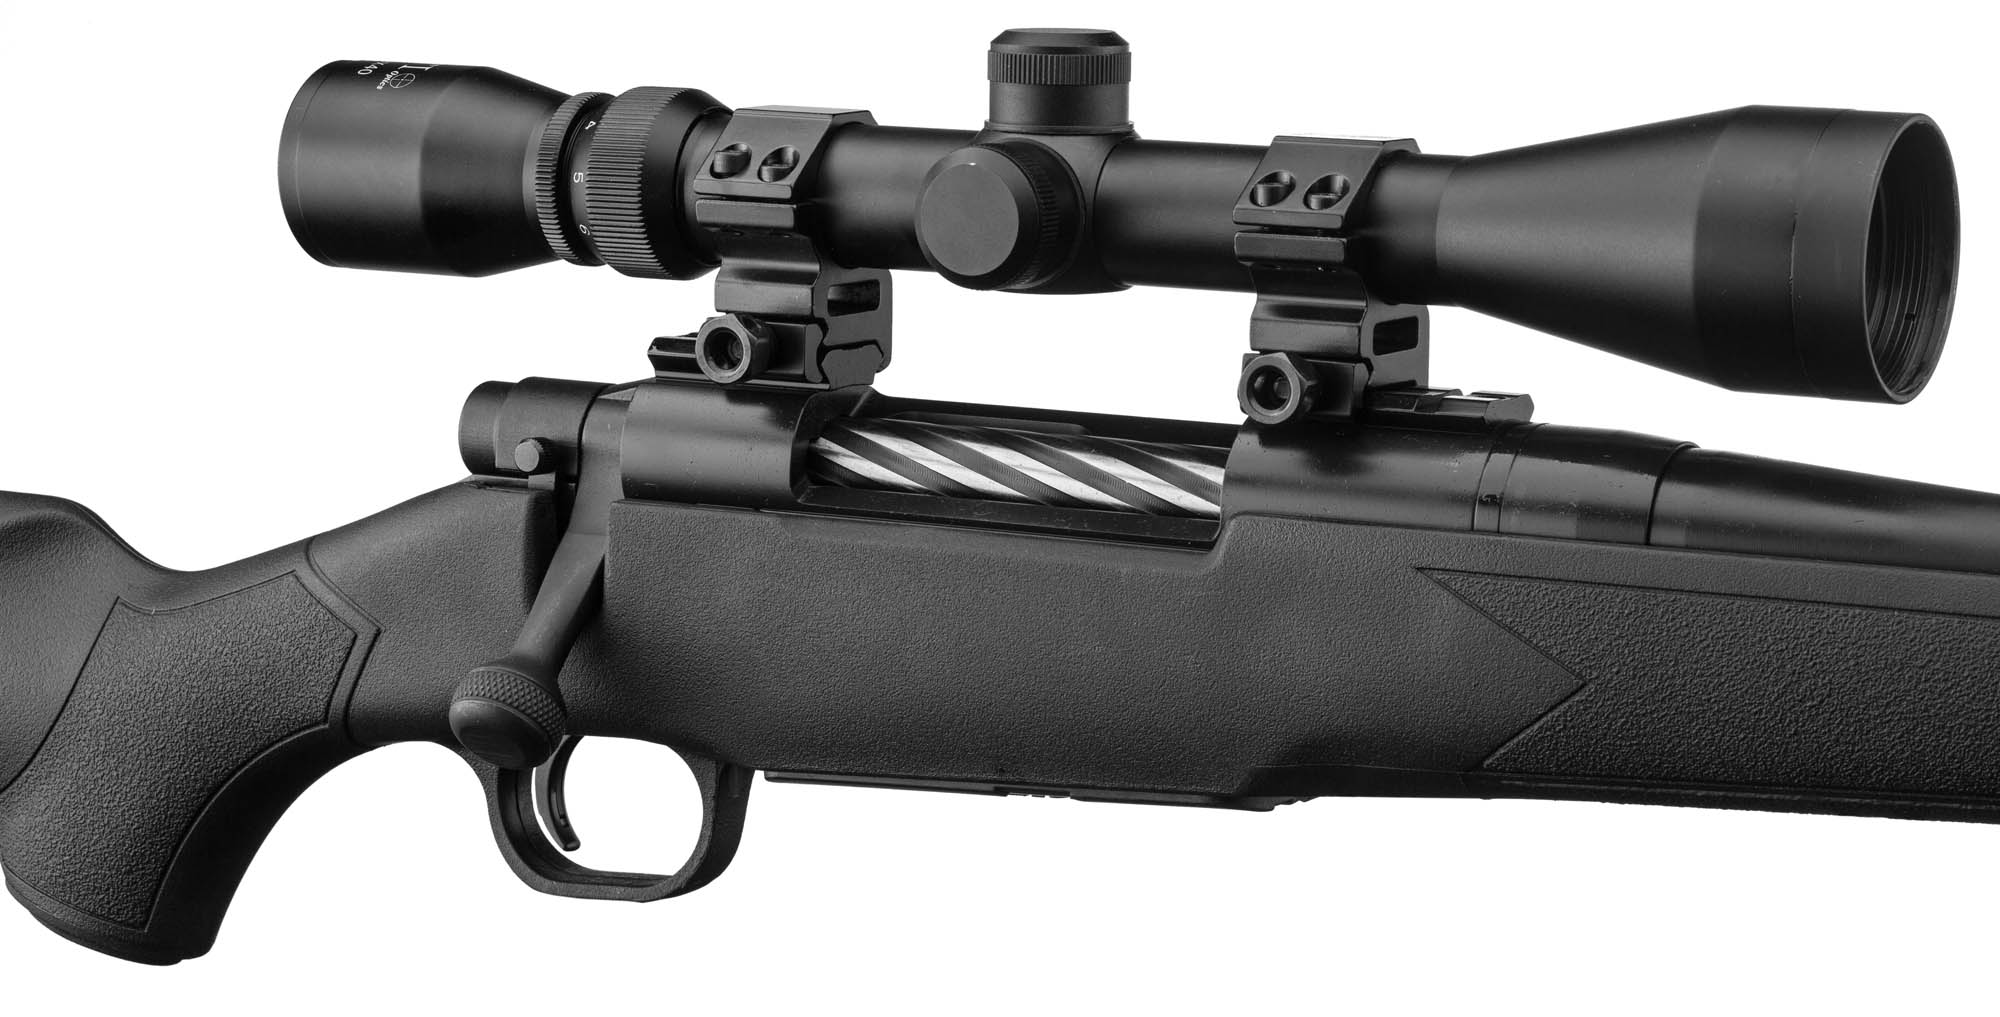 08f3800042 PCKMO2433-3-Pack Patriot Cal. 243 Win synthétique + Lunette 4-12 x 50 +  Montage - Mossberg